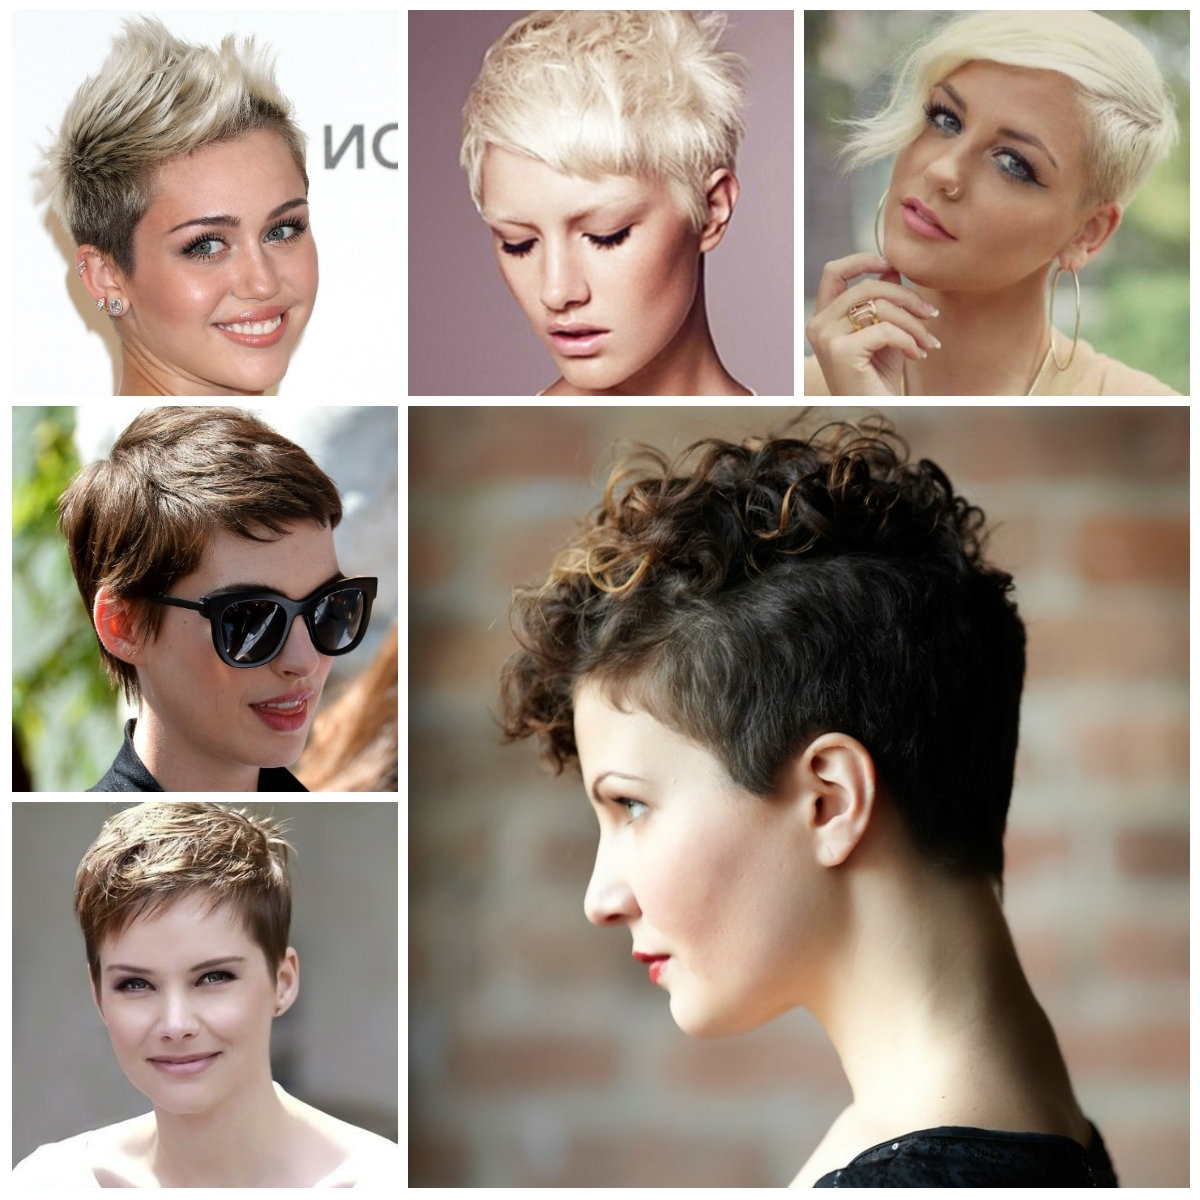 10 Trendy Pixie Haircuts For 2016 | Haircuts, Hairstyles 2017 And Intended For Latest Pixie Hairstyles Colors (View 12 of 15)